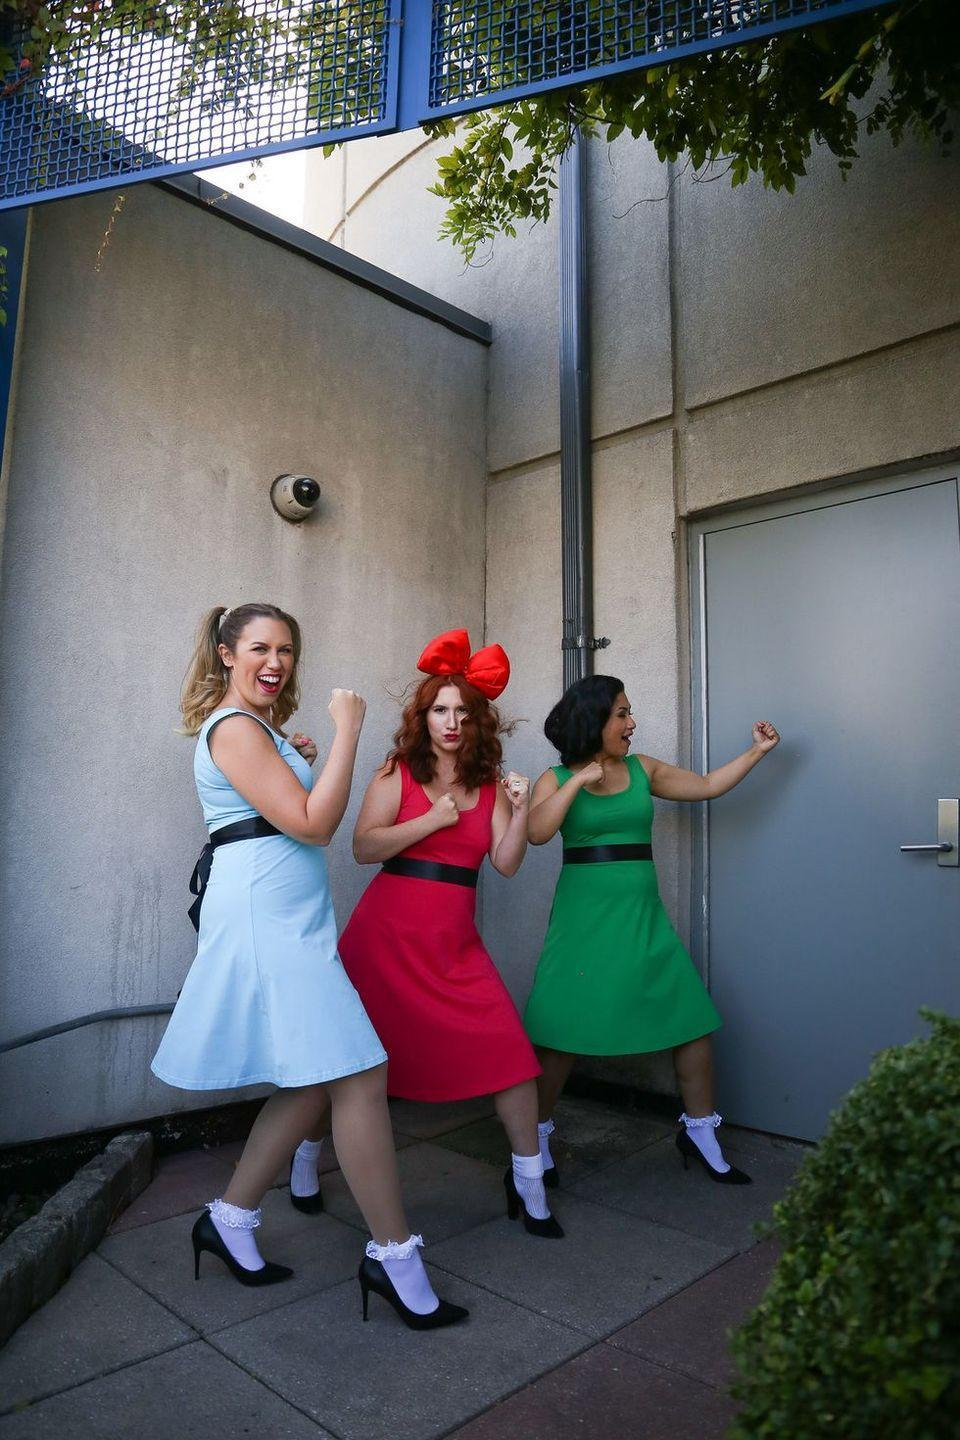 """<p>Have more than one best friend? That's totally fine, considering you can dress up as the <a href=""""https://www.countryliving.com/diy-crafts/g29344983/powerpuff-girls-costumes/"""" rel=""""nofollow noopener"""" target=""""_blank"""" data-ylk=""""slk:Powerpuff Girls"""" class=""""link rapid-noclick-resp"""">Powerpuff Girls</a>!</p><p><strong>Get the tutorial at <a href=""""http://livingaftermidnite.com/2019/10/group-halloween-costumes-that-will-win-you-best-dressed.html"""" rel=""""nofollow noopener"""" target=""""_blank"""" data-ylk=""""slk:Living After Midnite"""" class=""""link rapid-noclick-resp"""">Living After Midnite</a>.</strong></p><p><strong><a class=""""link rapid-noclick-resp"""" href=""""https://www.amazon.com/Ruffle-Frilly-Fashion-Ladies-Princess/dp/B0746C8WRG/?tag=syn-yahoo-20&ascsubtag=%5Bartid%7C10050.g.21349110%5Bsrc%7Cyahoo-us"""" rel=""""nofollow noopener"""" target=""""_blank"""" data-ylk=""""slk:SHOP RUFFLE SOCKS"""">SHOP RUFFLE SOCKS</a><br></strong></p>"""